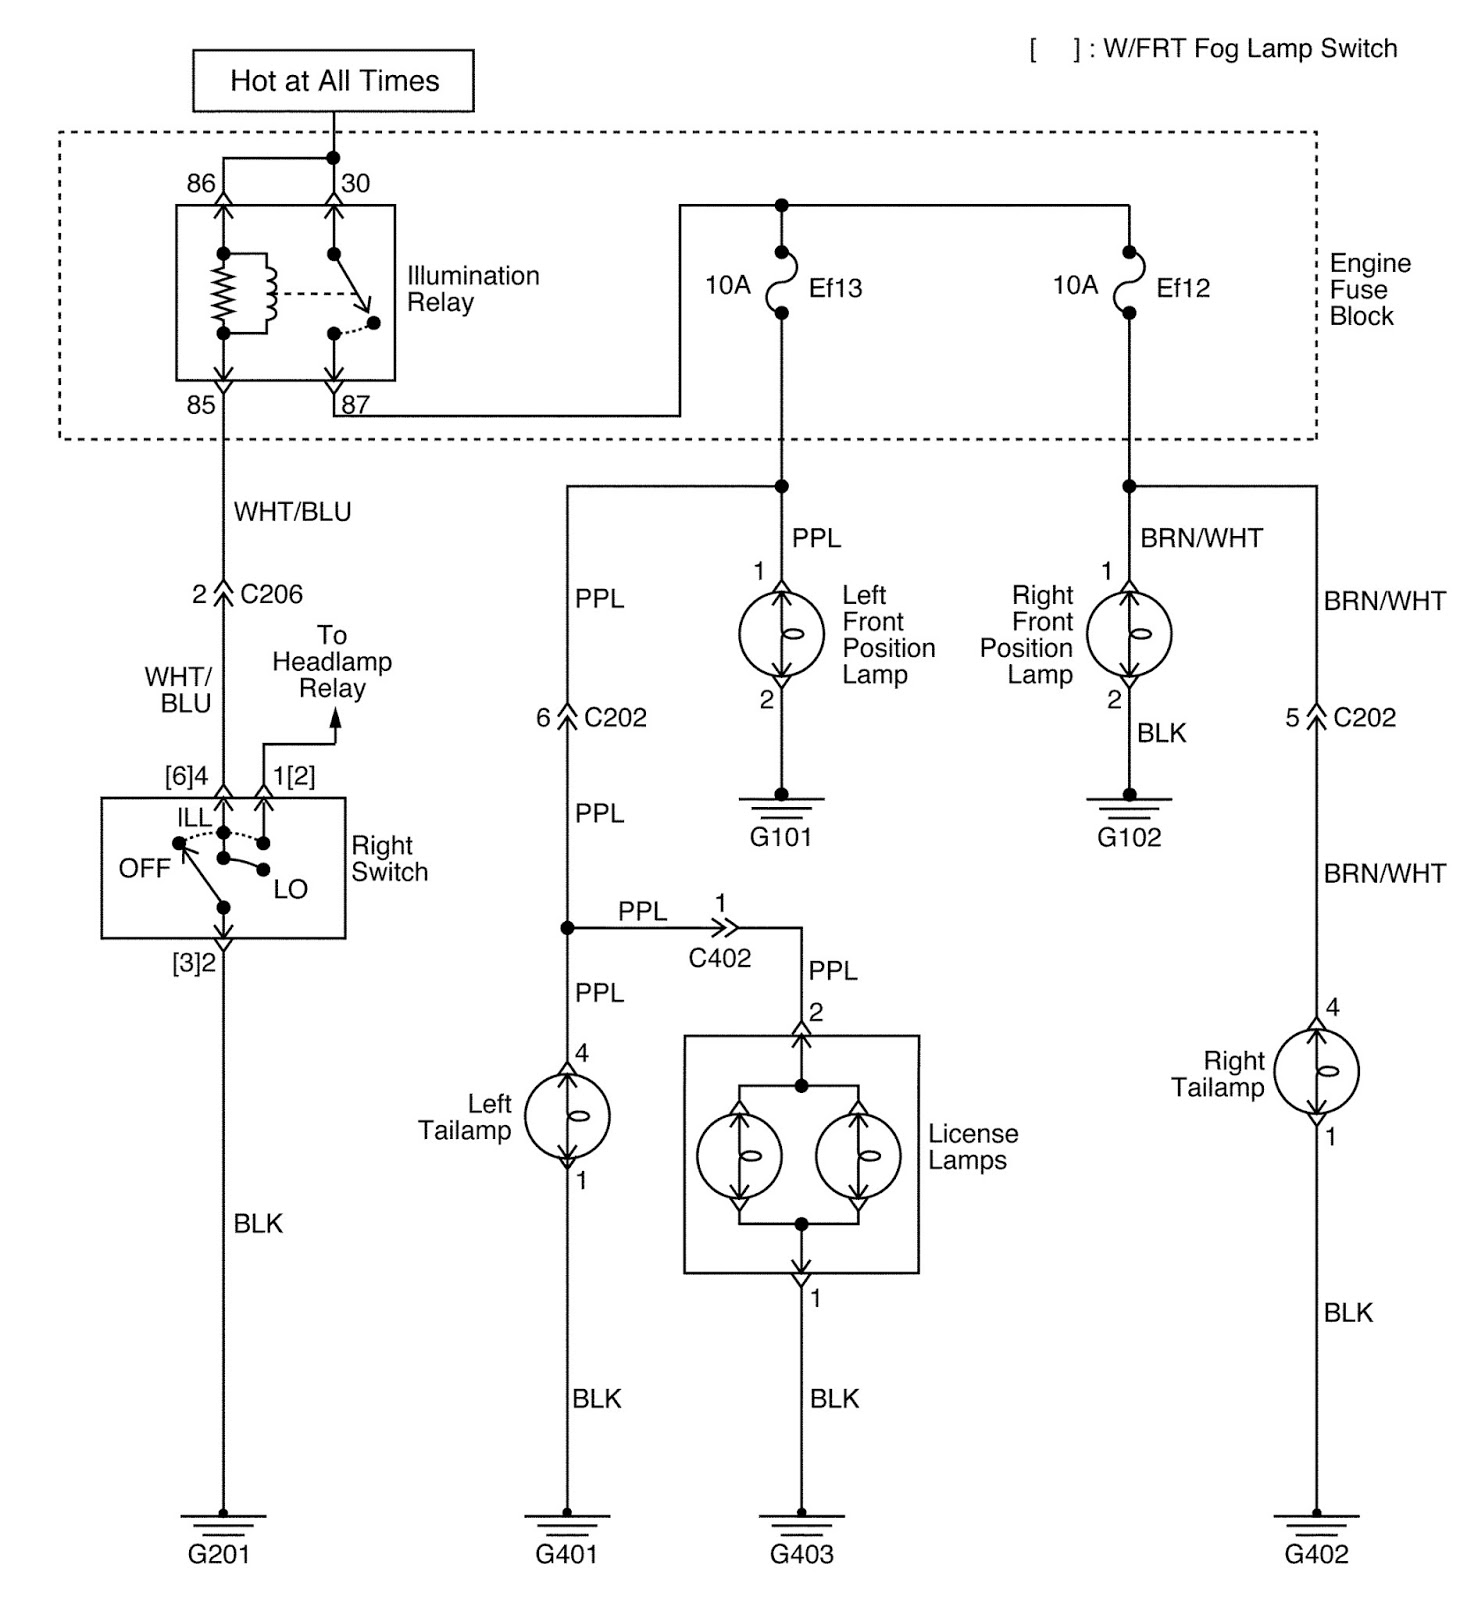 hight resolution of daewoo lanos wiring diagram data wiring diagram schema custom daewoo lanos 2002 2002 daewoo lanos wiring diagram